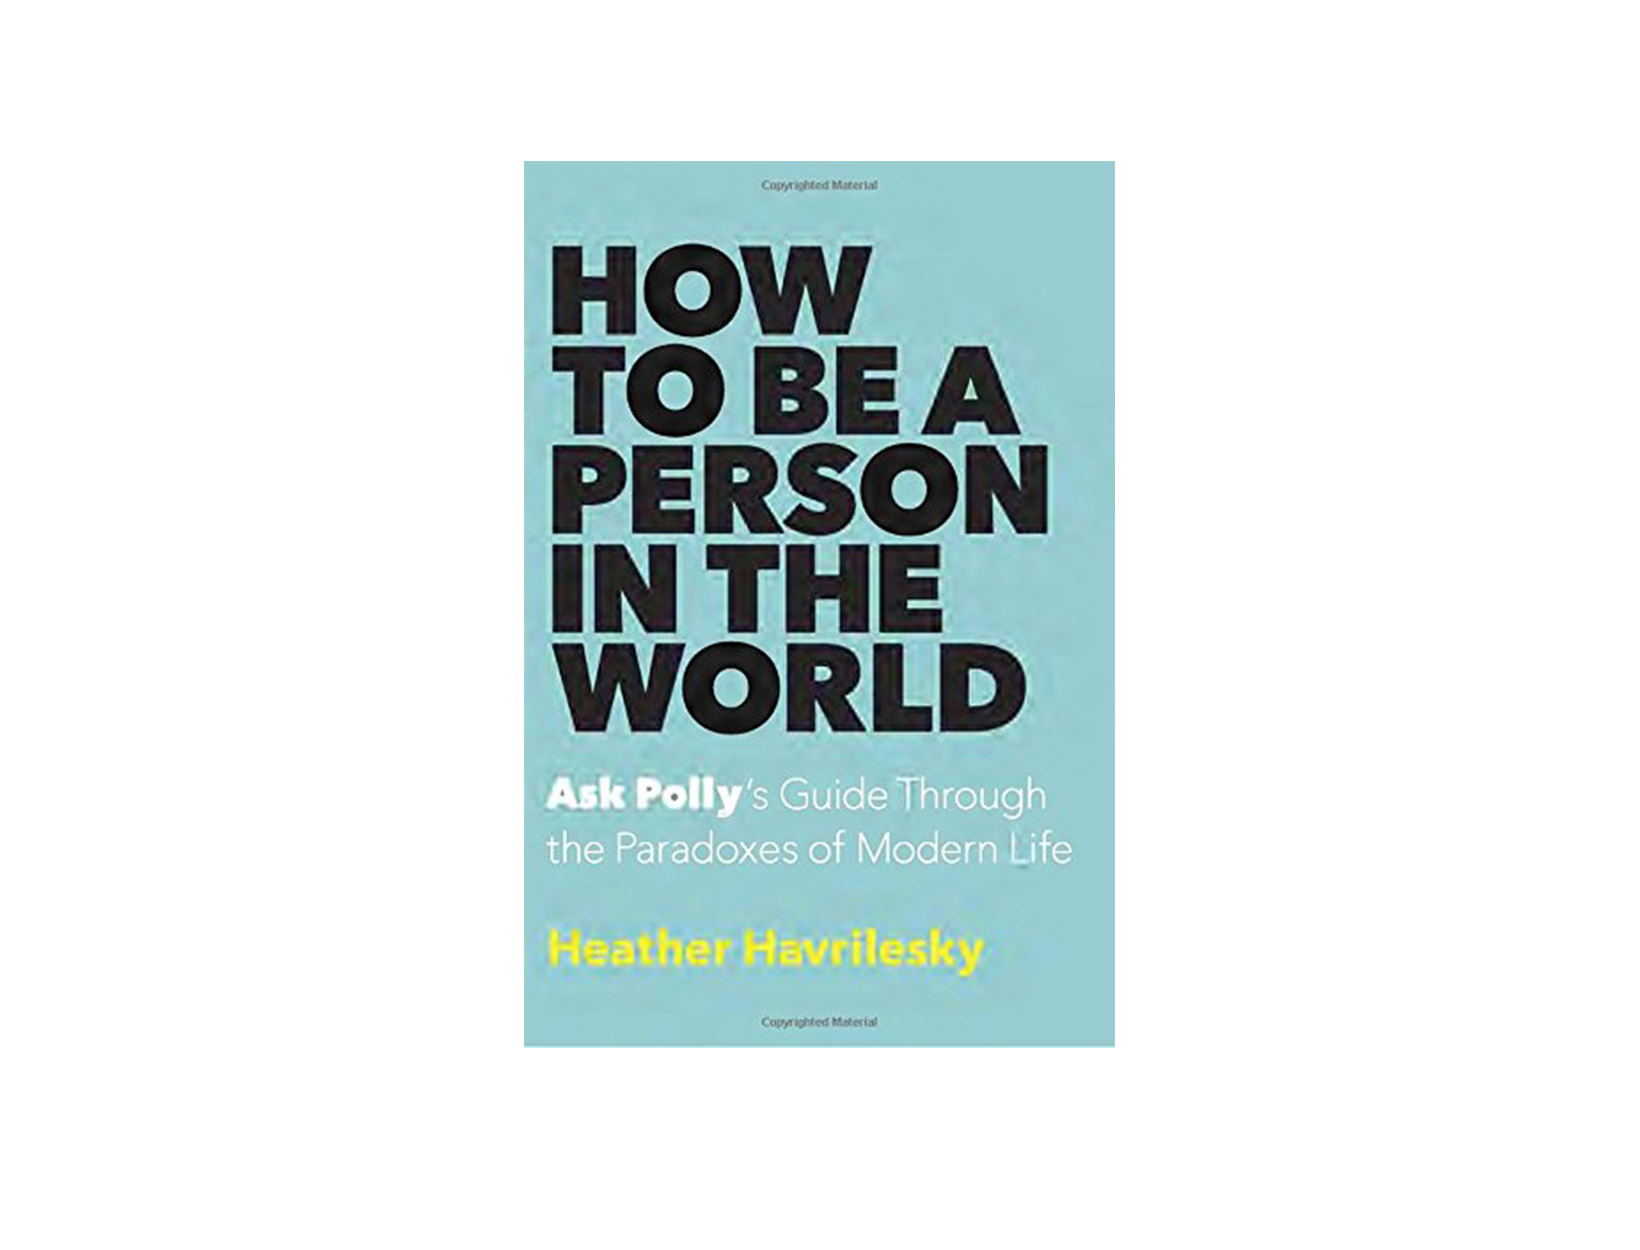 How to Be a Person in the World by Heather Havrilesky